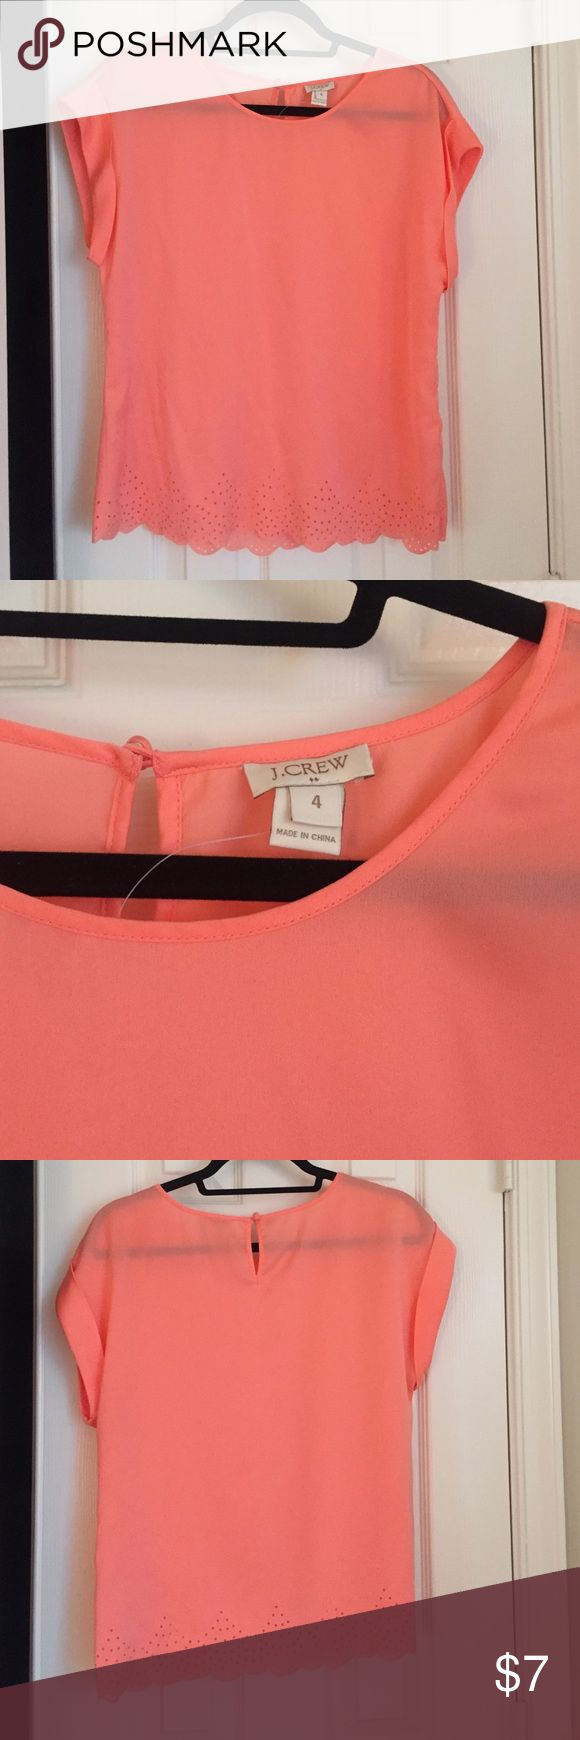 Jcrew factory coral blouse Size 4 Coral jcrew factory top size 4 new with out tags J.Crew Factory Tops Blouses